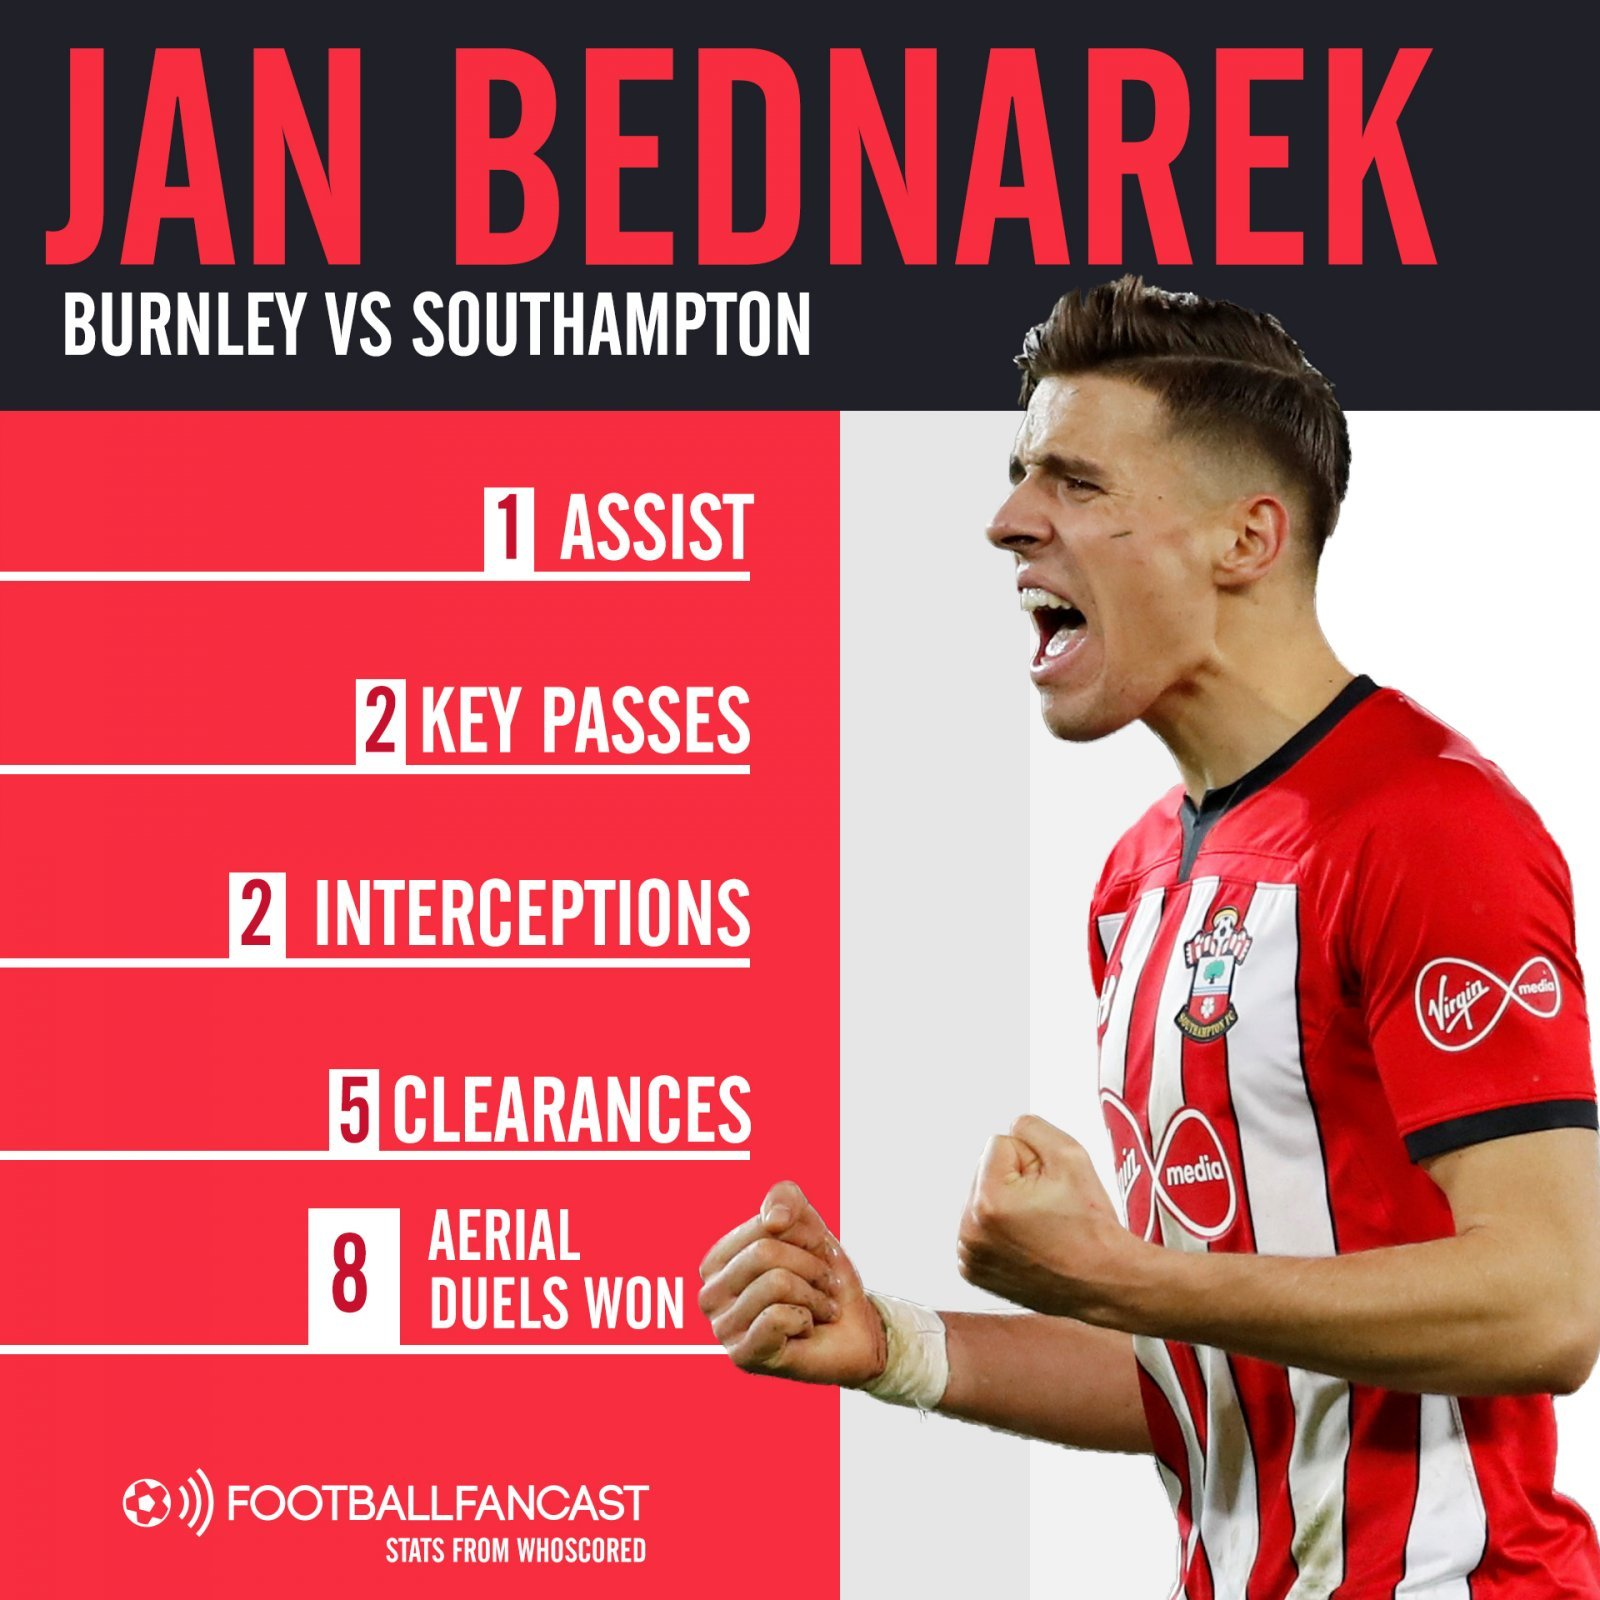 Southampton centre back Jan Bednareks stats in Burnley draw - Southampton man proved on Saturday he is key player in relegation battle, and it isn't Redmond